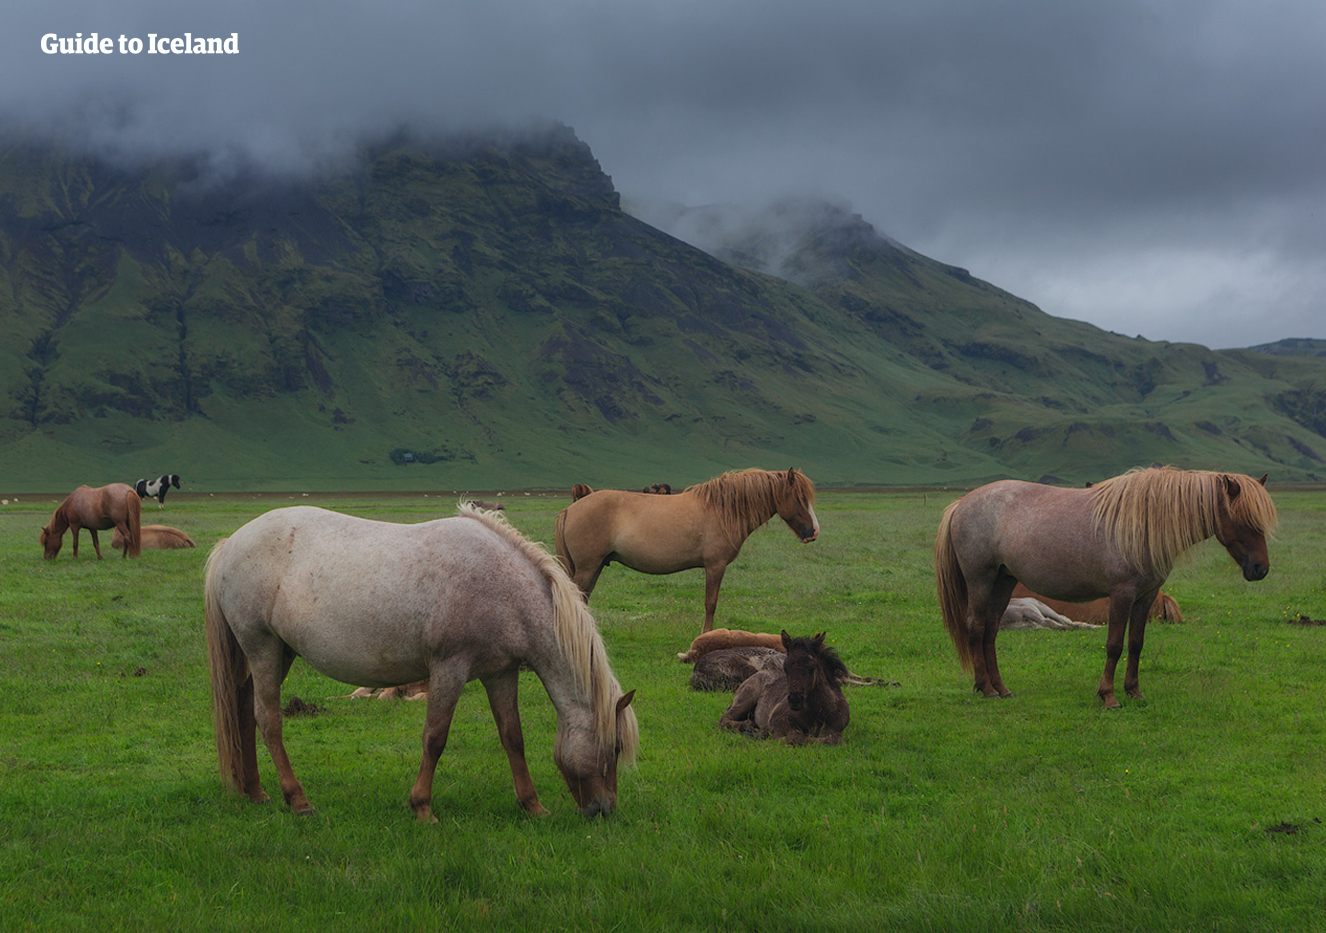 Iceland horses are known for being intelligent, sociable, curiousandsweet.